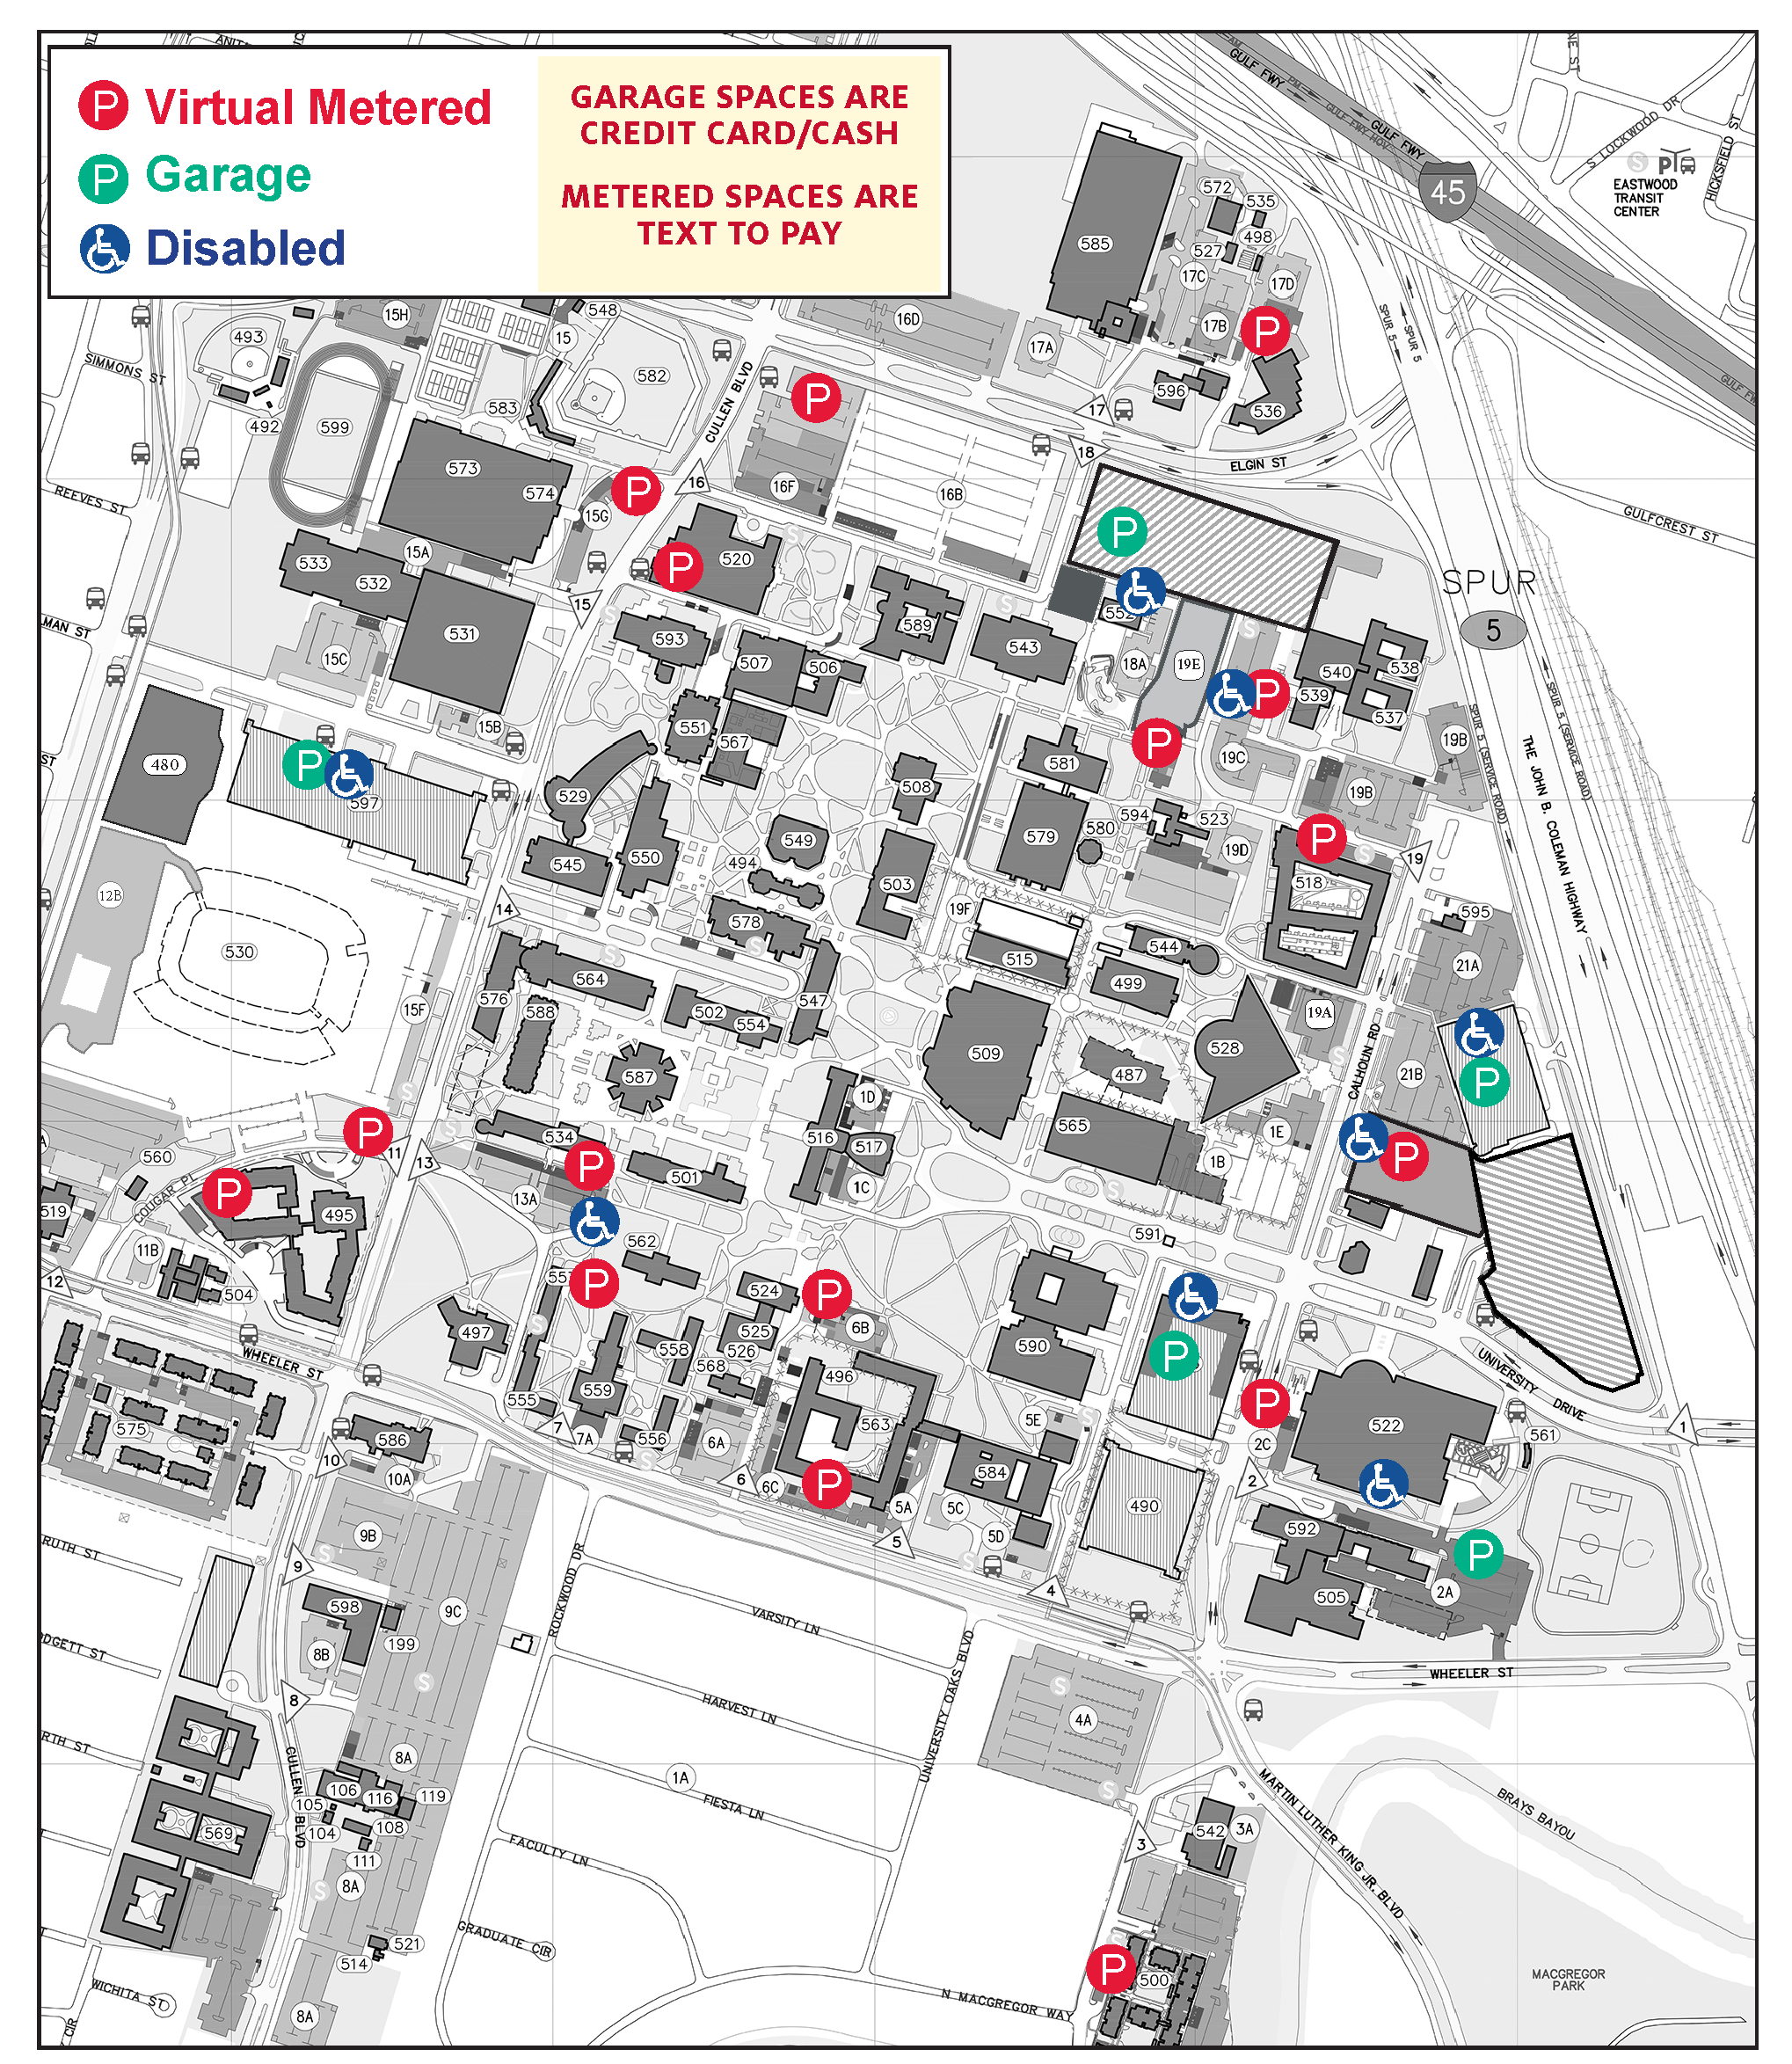 Parking Maps - University of Houston on ro map, cal state fullerton map, university of hawaii map, uz map, fa map, rice university parking map, the kentucky map, u of h campus map, fsu college map, uq map,